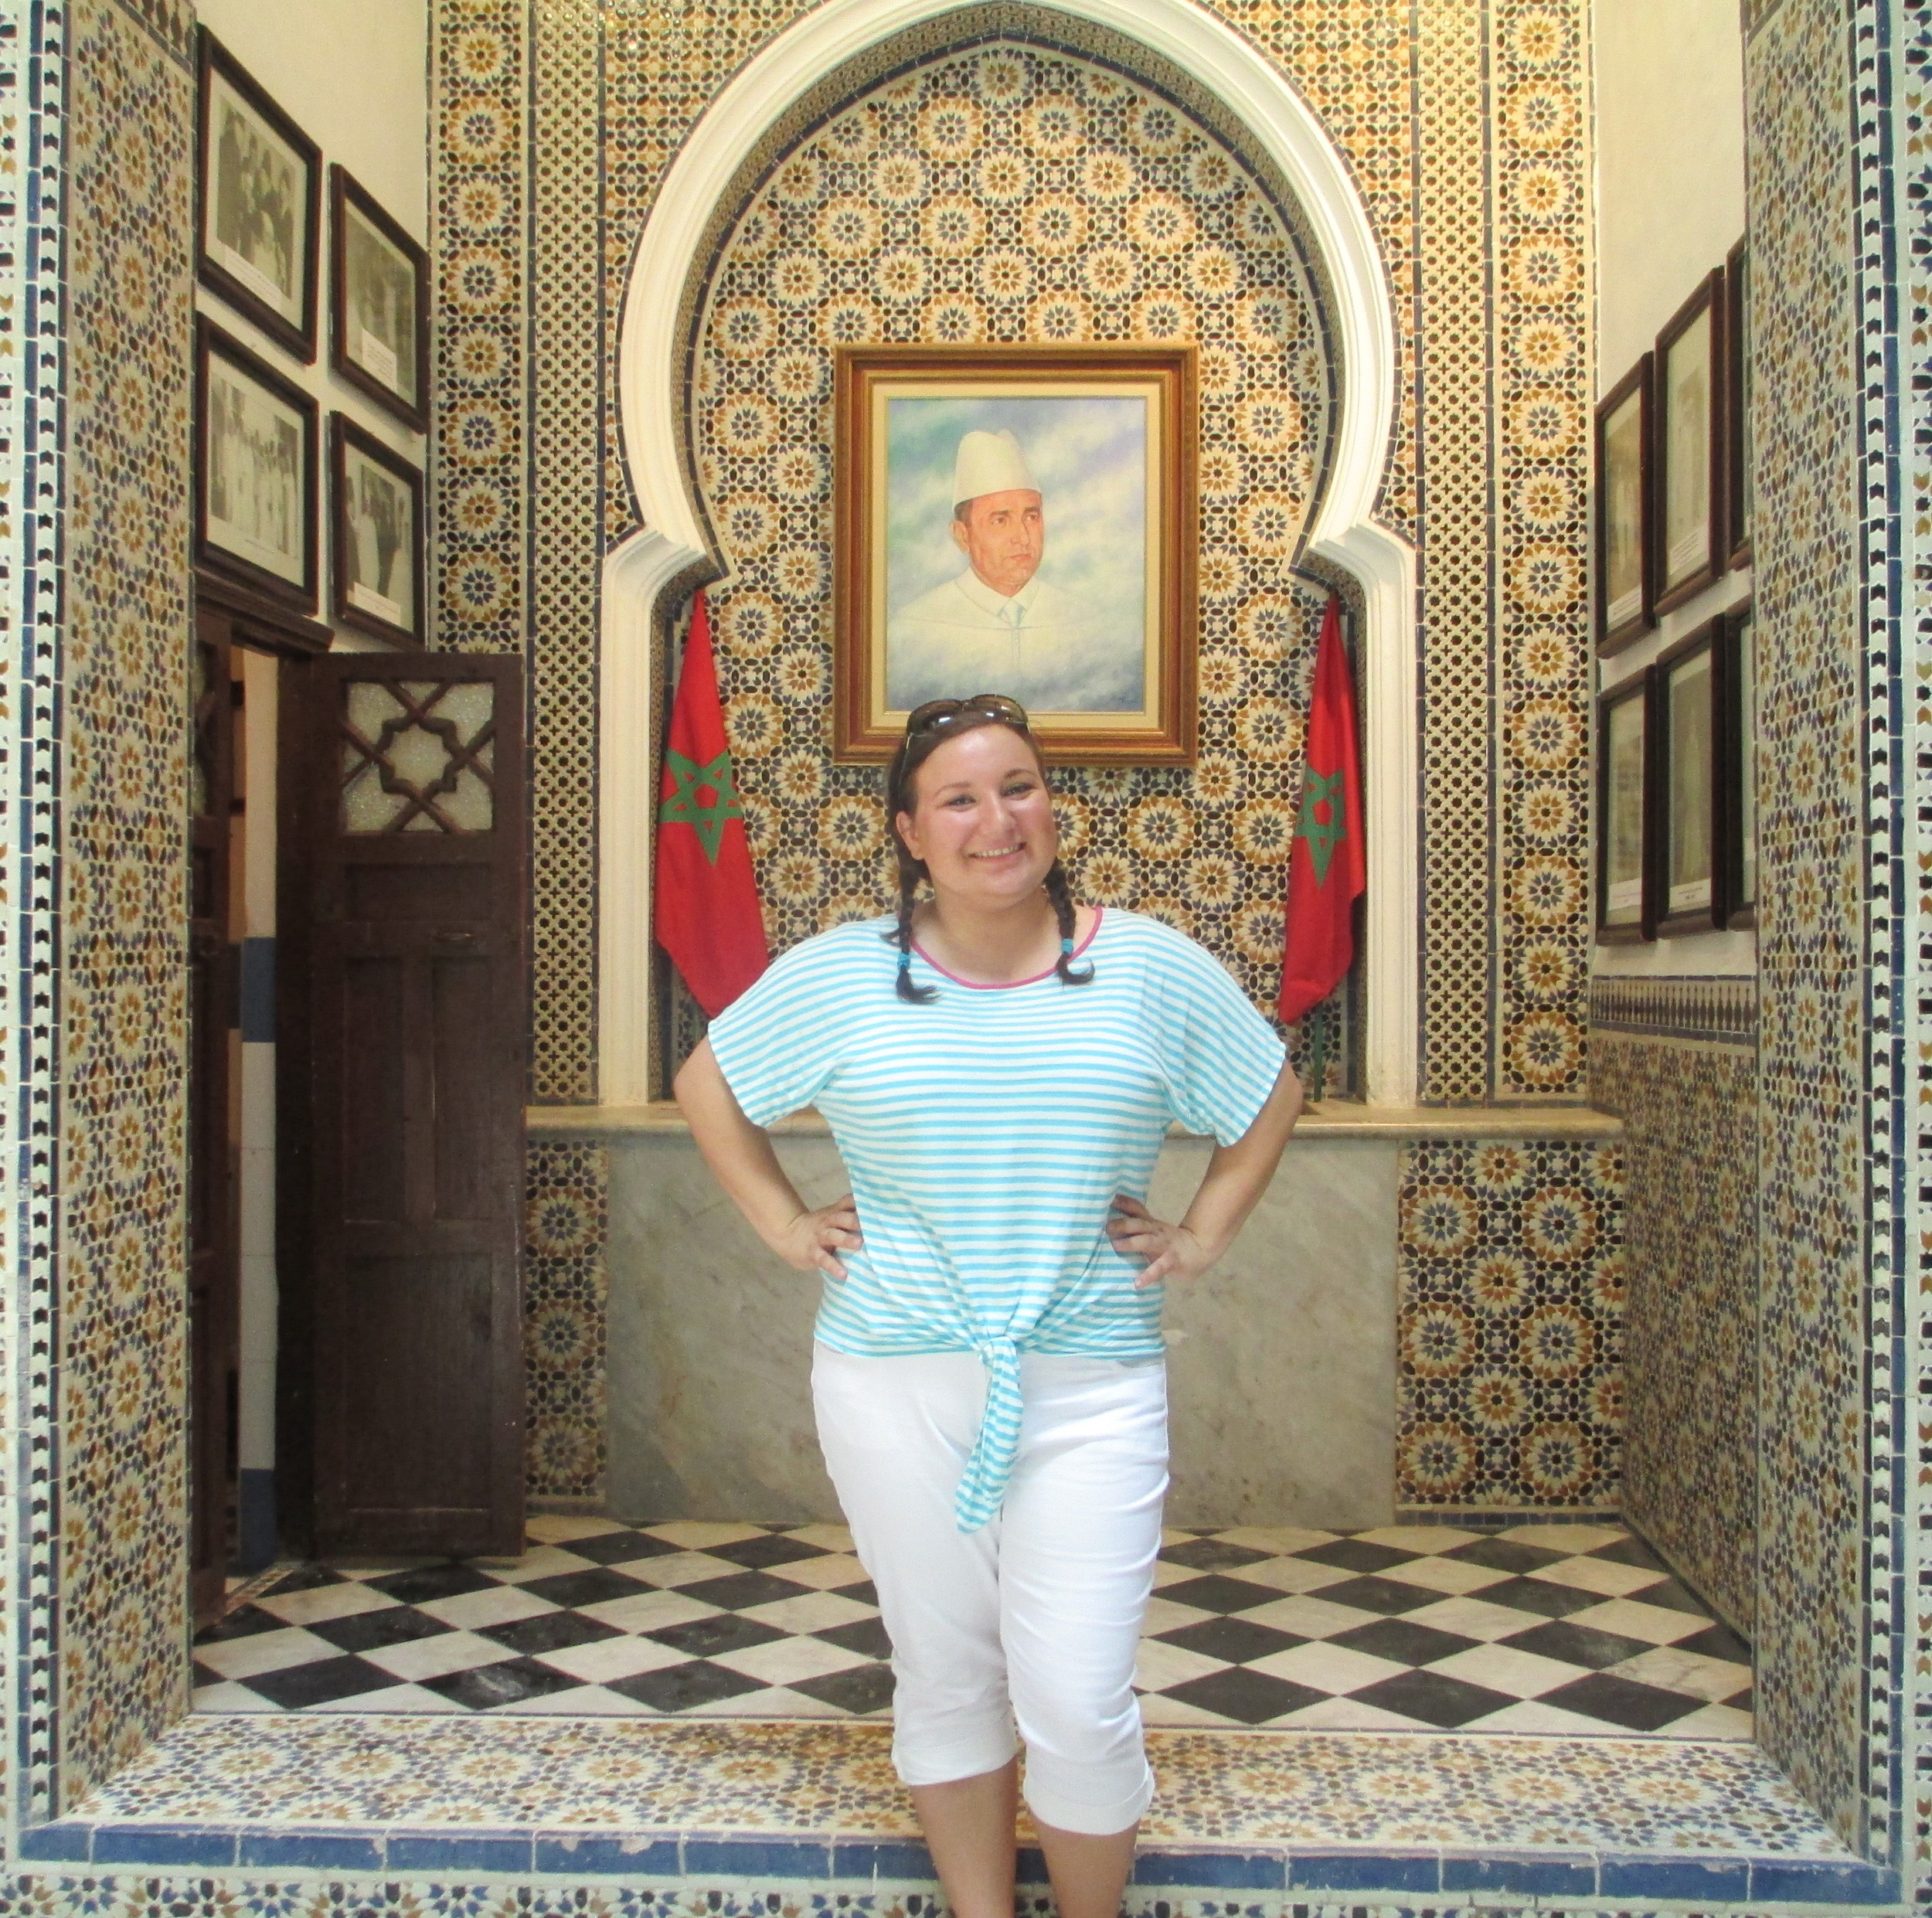 A photograph of me visiting a museum in Tetouan, Morocco.